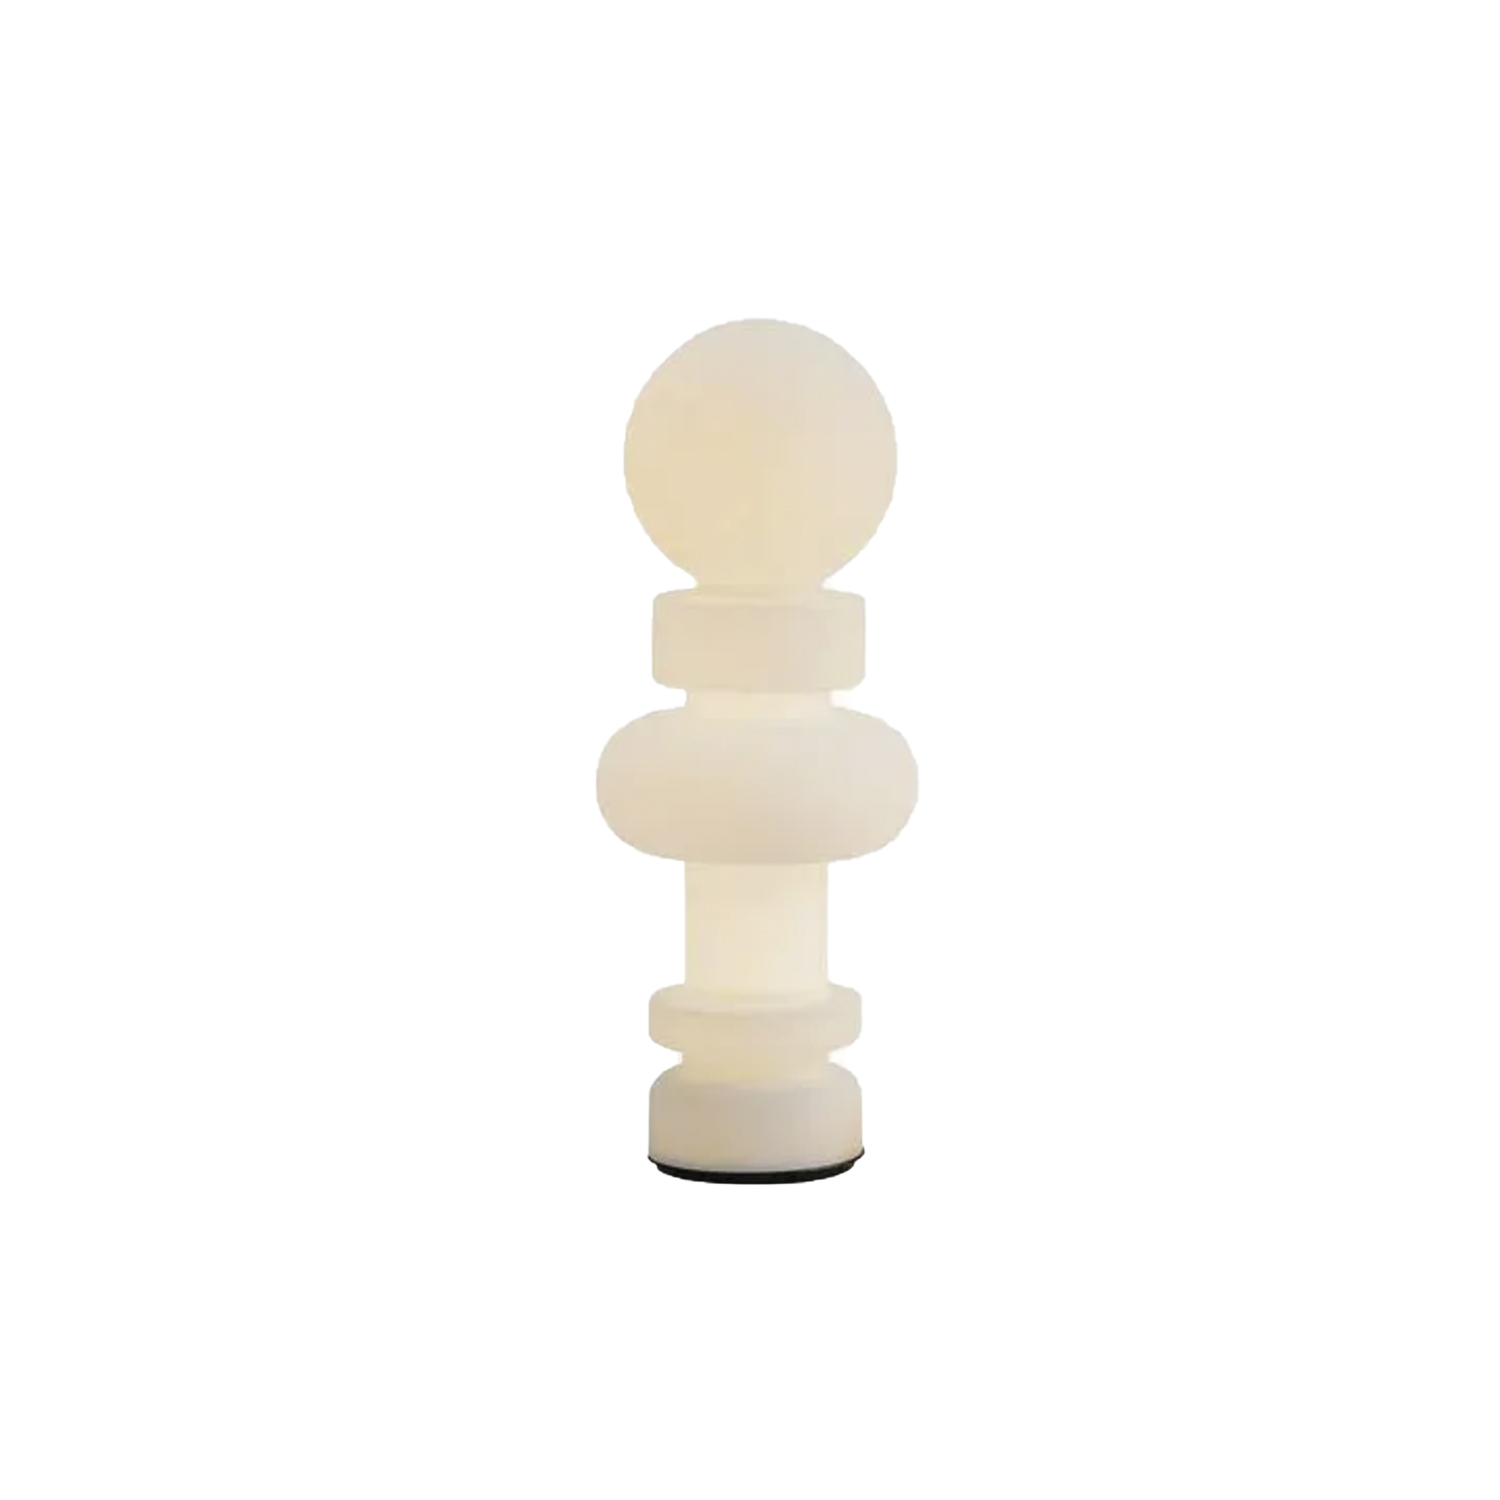 Re Table/ Floor Lamp - Inspired by the game of chess with their sinuous shapes, Re and Regina are the key characters of the chessboard. Their profiles stand out clearly in the white light diffused by opalescent glass. Real individuals, they play in pairs alternating spheres, cylinders and rings of light. Vertical the King (Re), horizontal the Queen (Regina). They can be placed next to each other or in different spots in the same room, be used as floor or table lamps, on a coffee table or a desk, both Re and Regina have the presence to create a context. The dimmer allows to modulate the light making it a surreal element with different degrees of intensity: an element of representation that releases energy in space when the light is bright, abstract and restful when the light is soft and low. Glass sculptures during the day in environments illuminated by natural light. Re and Regina are inspired by the history of art, from Cosmè Tura to the Flemish interiors of Jan Van Eych to the conceptual imagery of Marcel Duchamp who plays chess as a lifestyle. Re and Regina are Cartesian axes of a universe that crosses ages and cultures. In 2020 FontanaArte reintroduces these glass lamps as a sign of the expressive wealth contained in the great repertory of ideas that is the FontanaArte catalogue and, most importantly an homage to the talent of an artist who had a gift for calibrating the formal tension of a utilitarian object on a quest for unity among the arts.  Dimmable diffused-light table or floor lamp. Painted metal frame. Diffuser in satin-blown glass.  Black power cable, dimmer and plug. Power supply with interchangeable plugs (europe - usa). Integrated LED. | Matter of Stuff